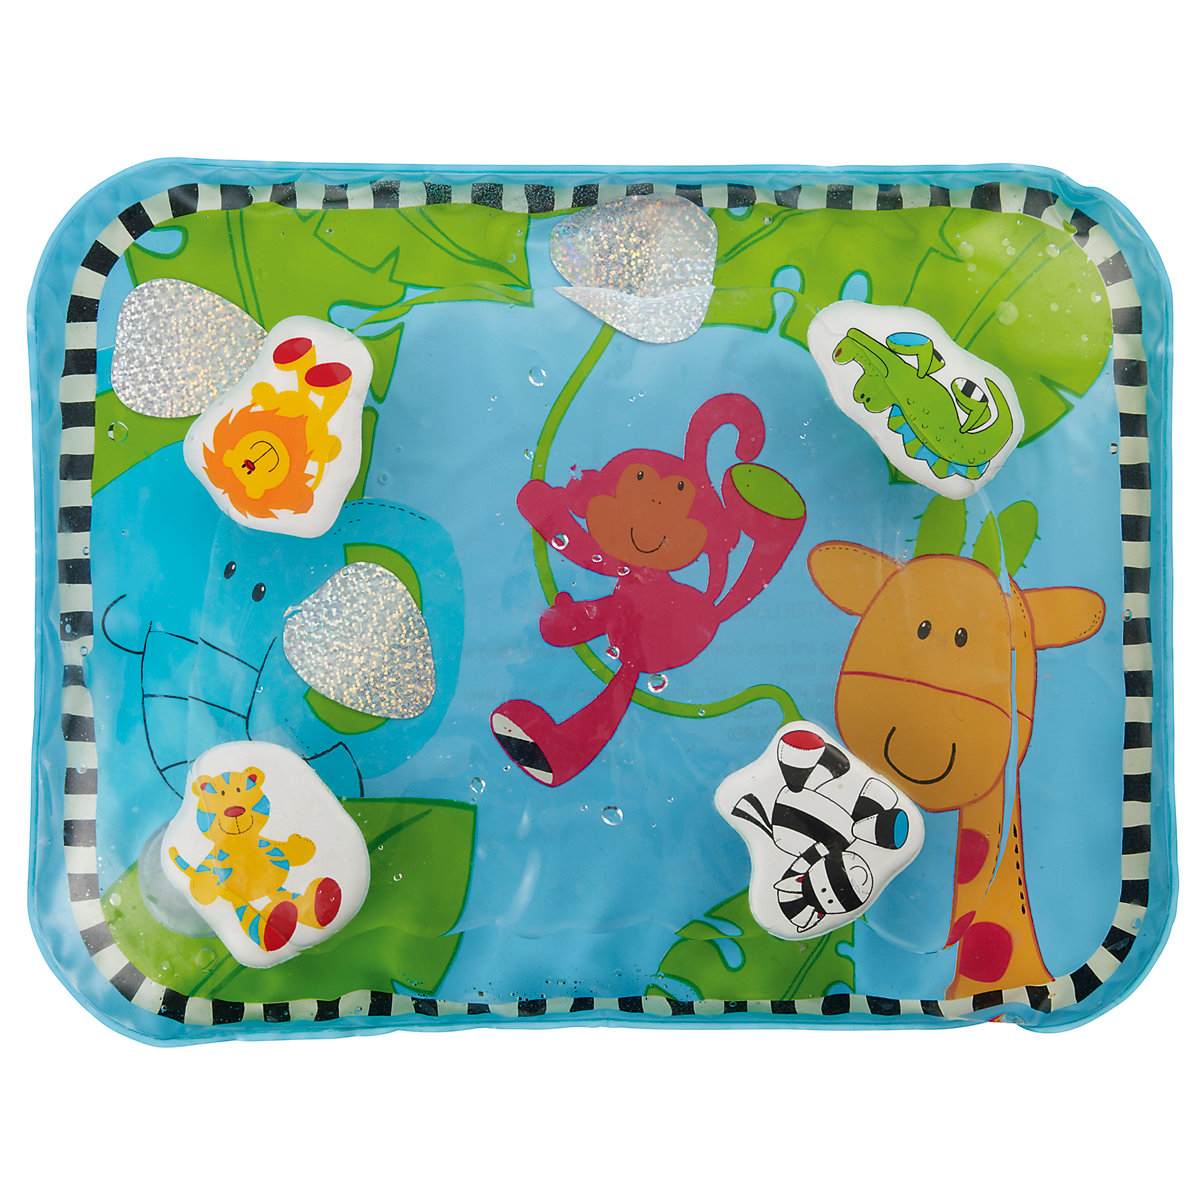 New ELC Boys and Girls Jungle Pat Mat Toy From 6 months - Toddler Gifts